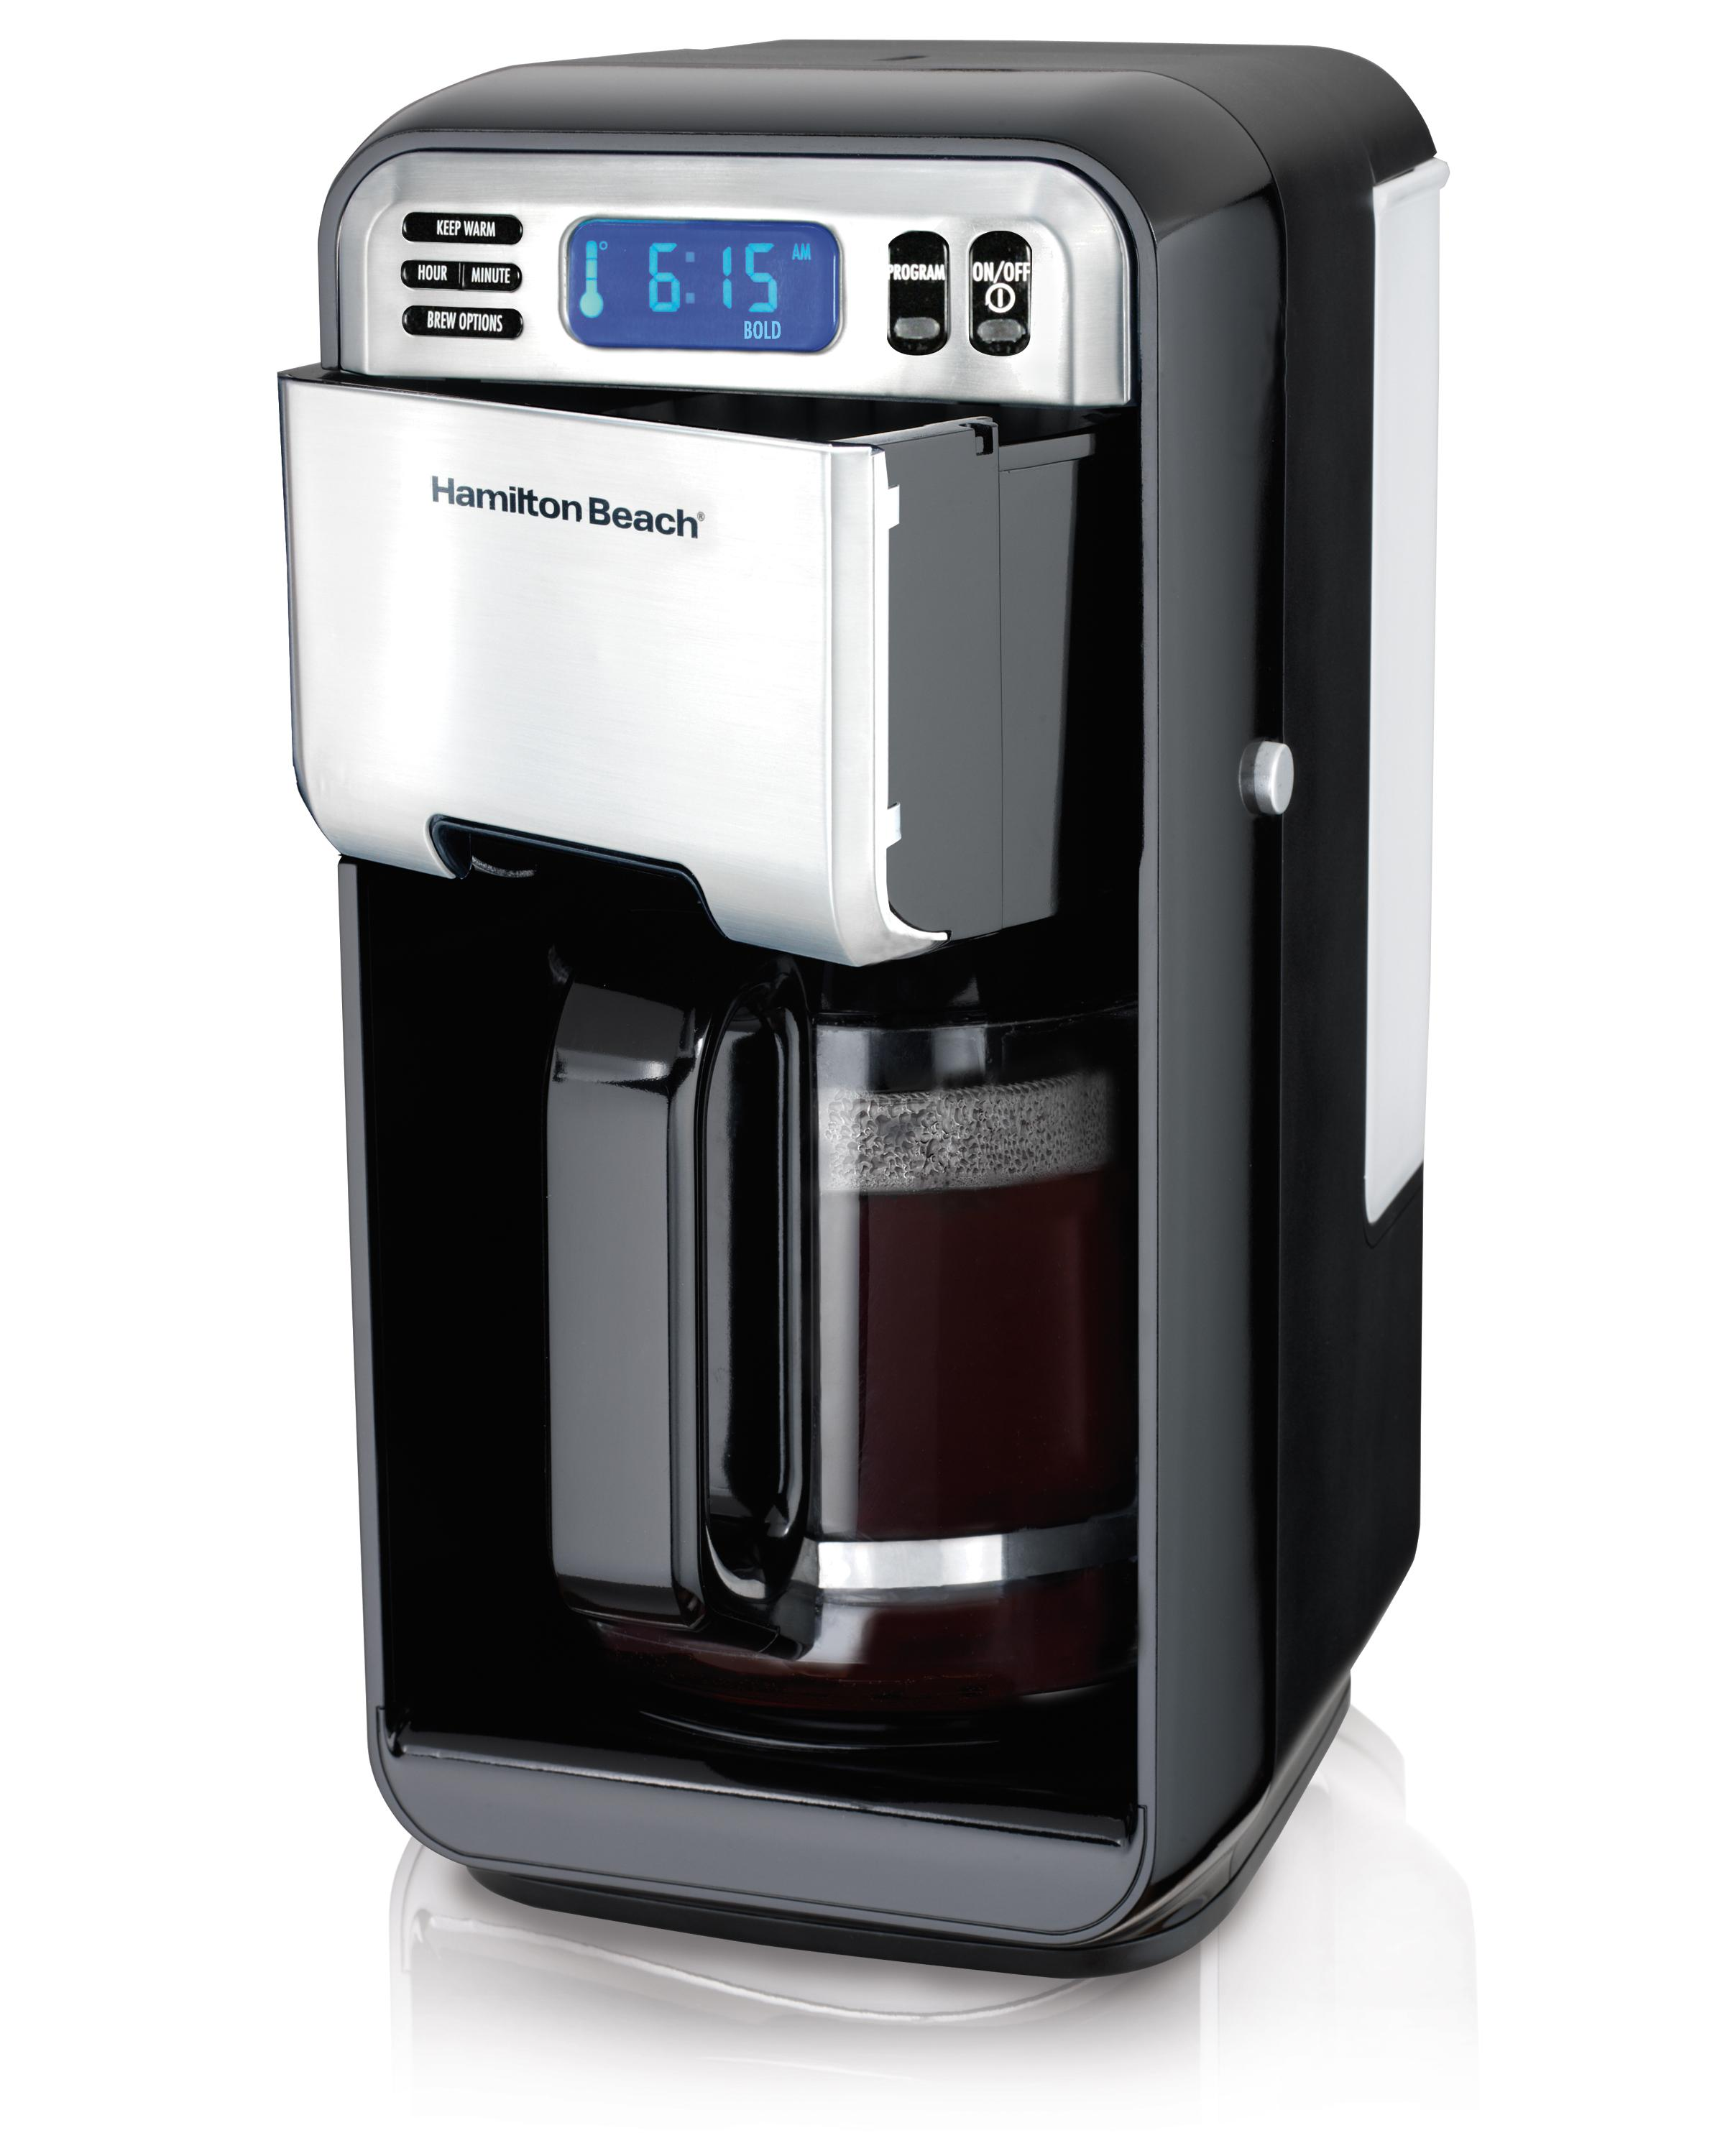 Hamilton Beach 12 Cup Digital Coffee Maker: coffee maker brands